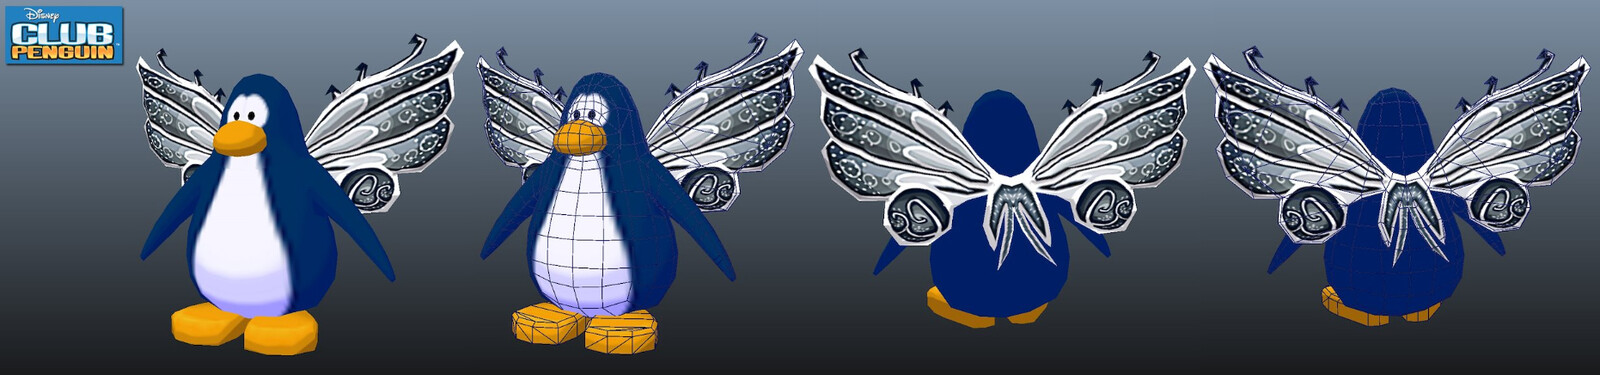 One of the accessories that I modeled and textured for Disney's Club Penguin. (Penguin model created by another artist)